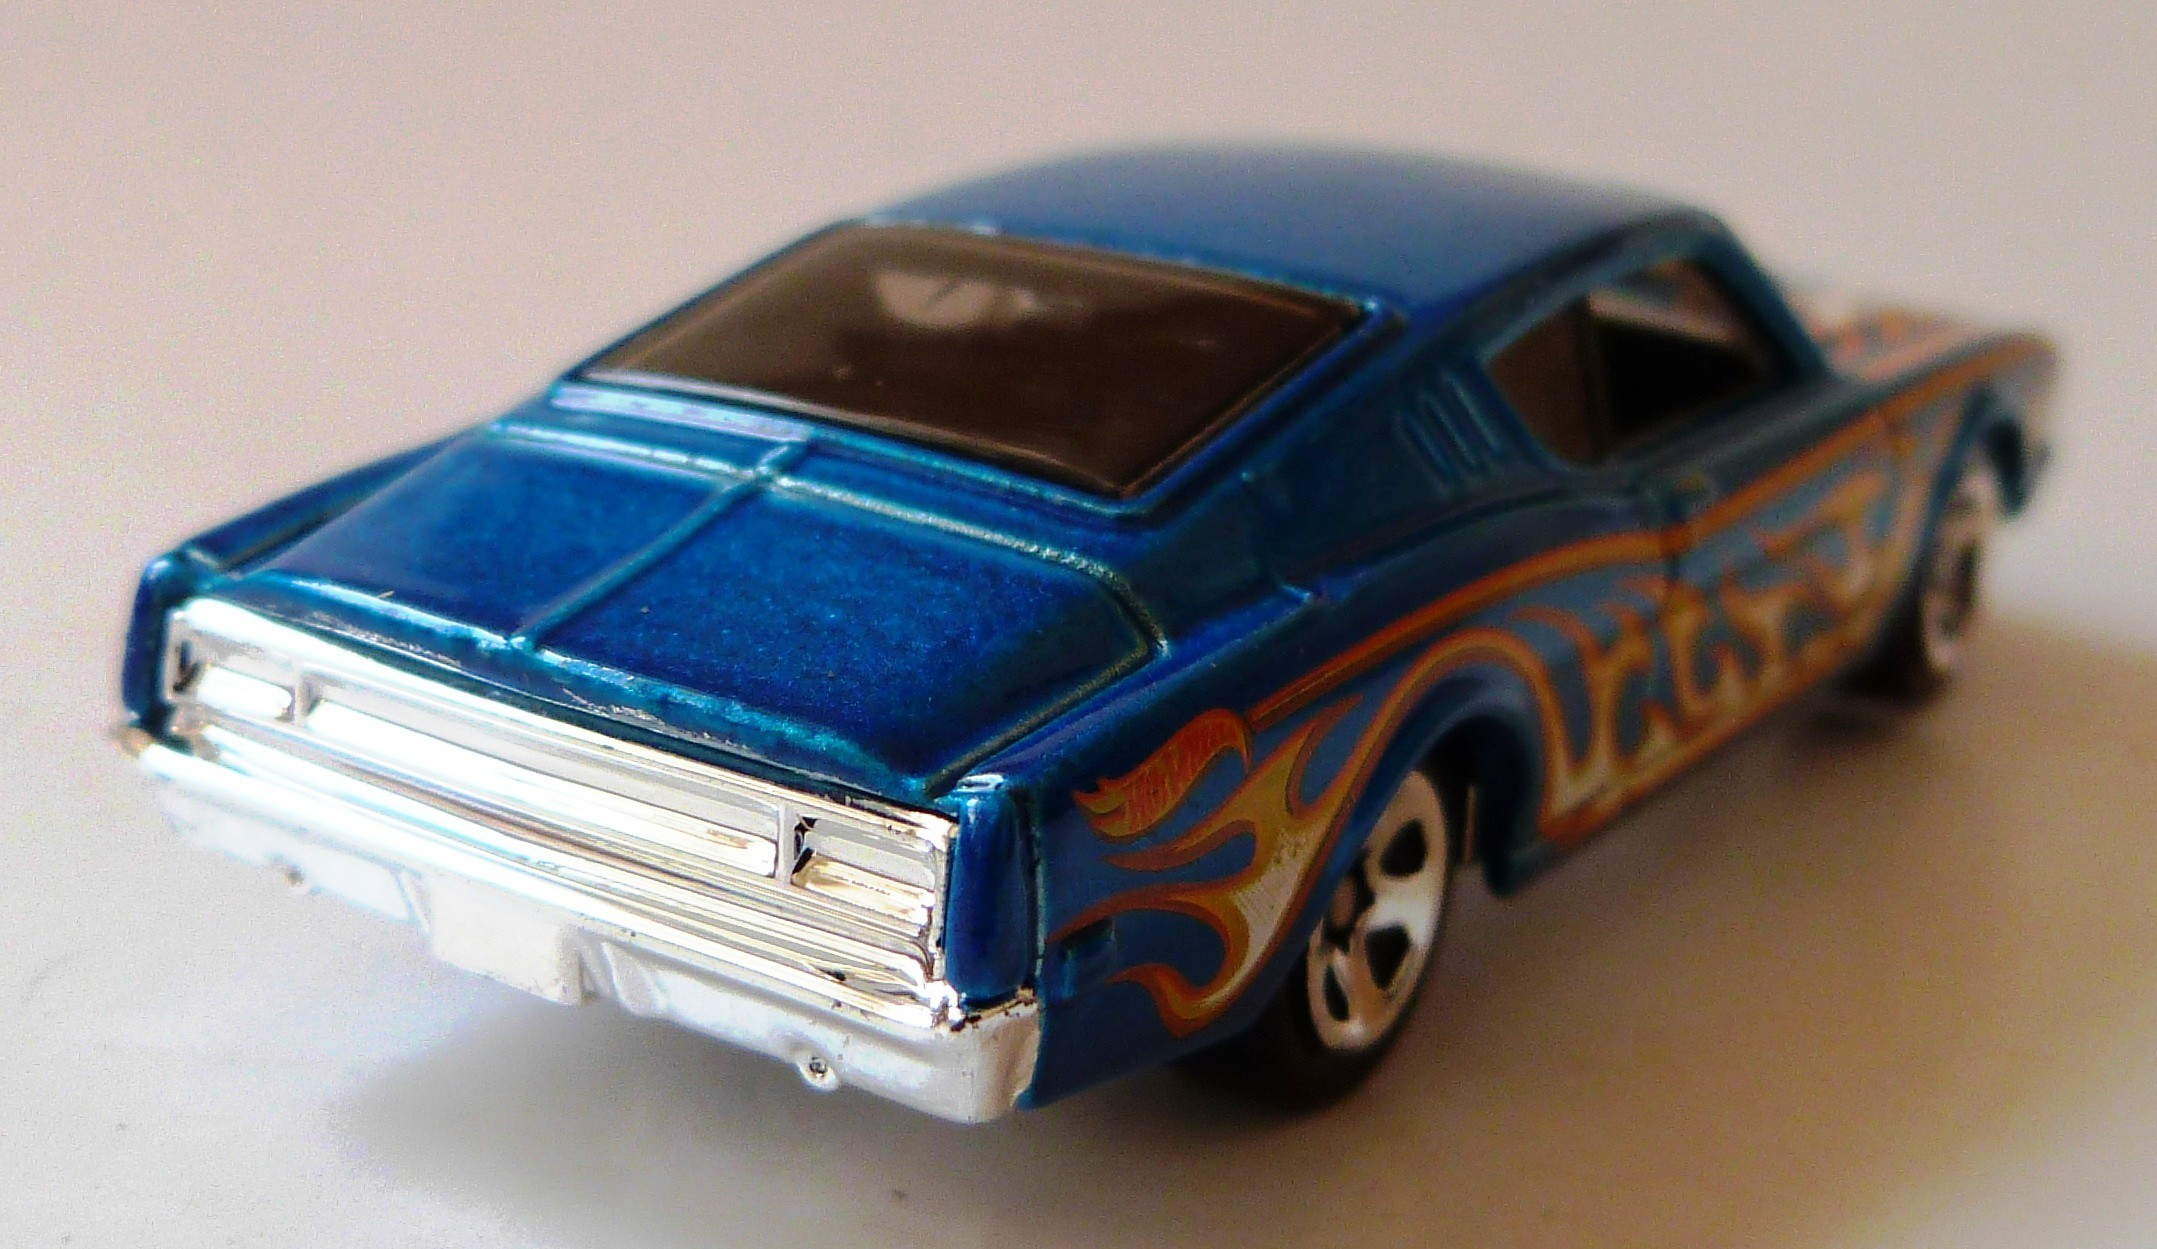 '69 Mercury Cyclone/HW ok